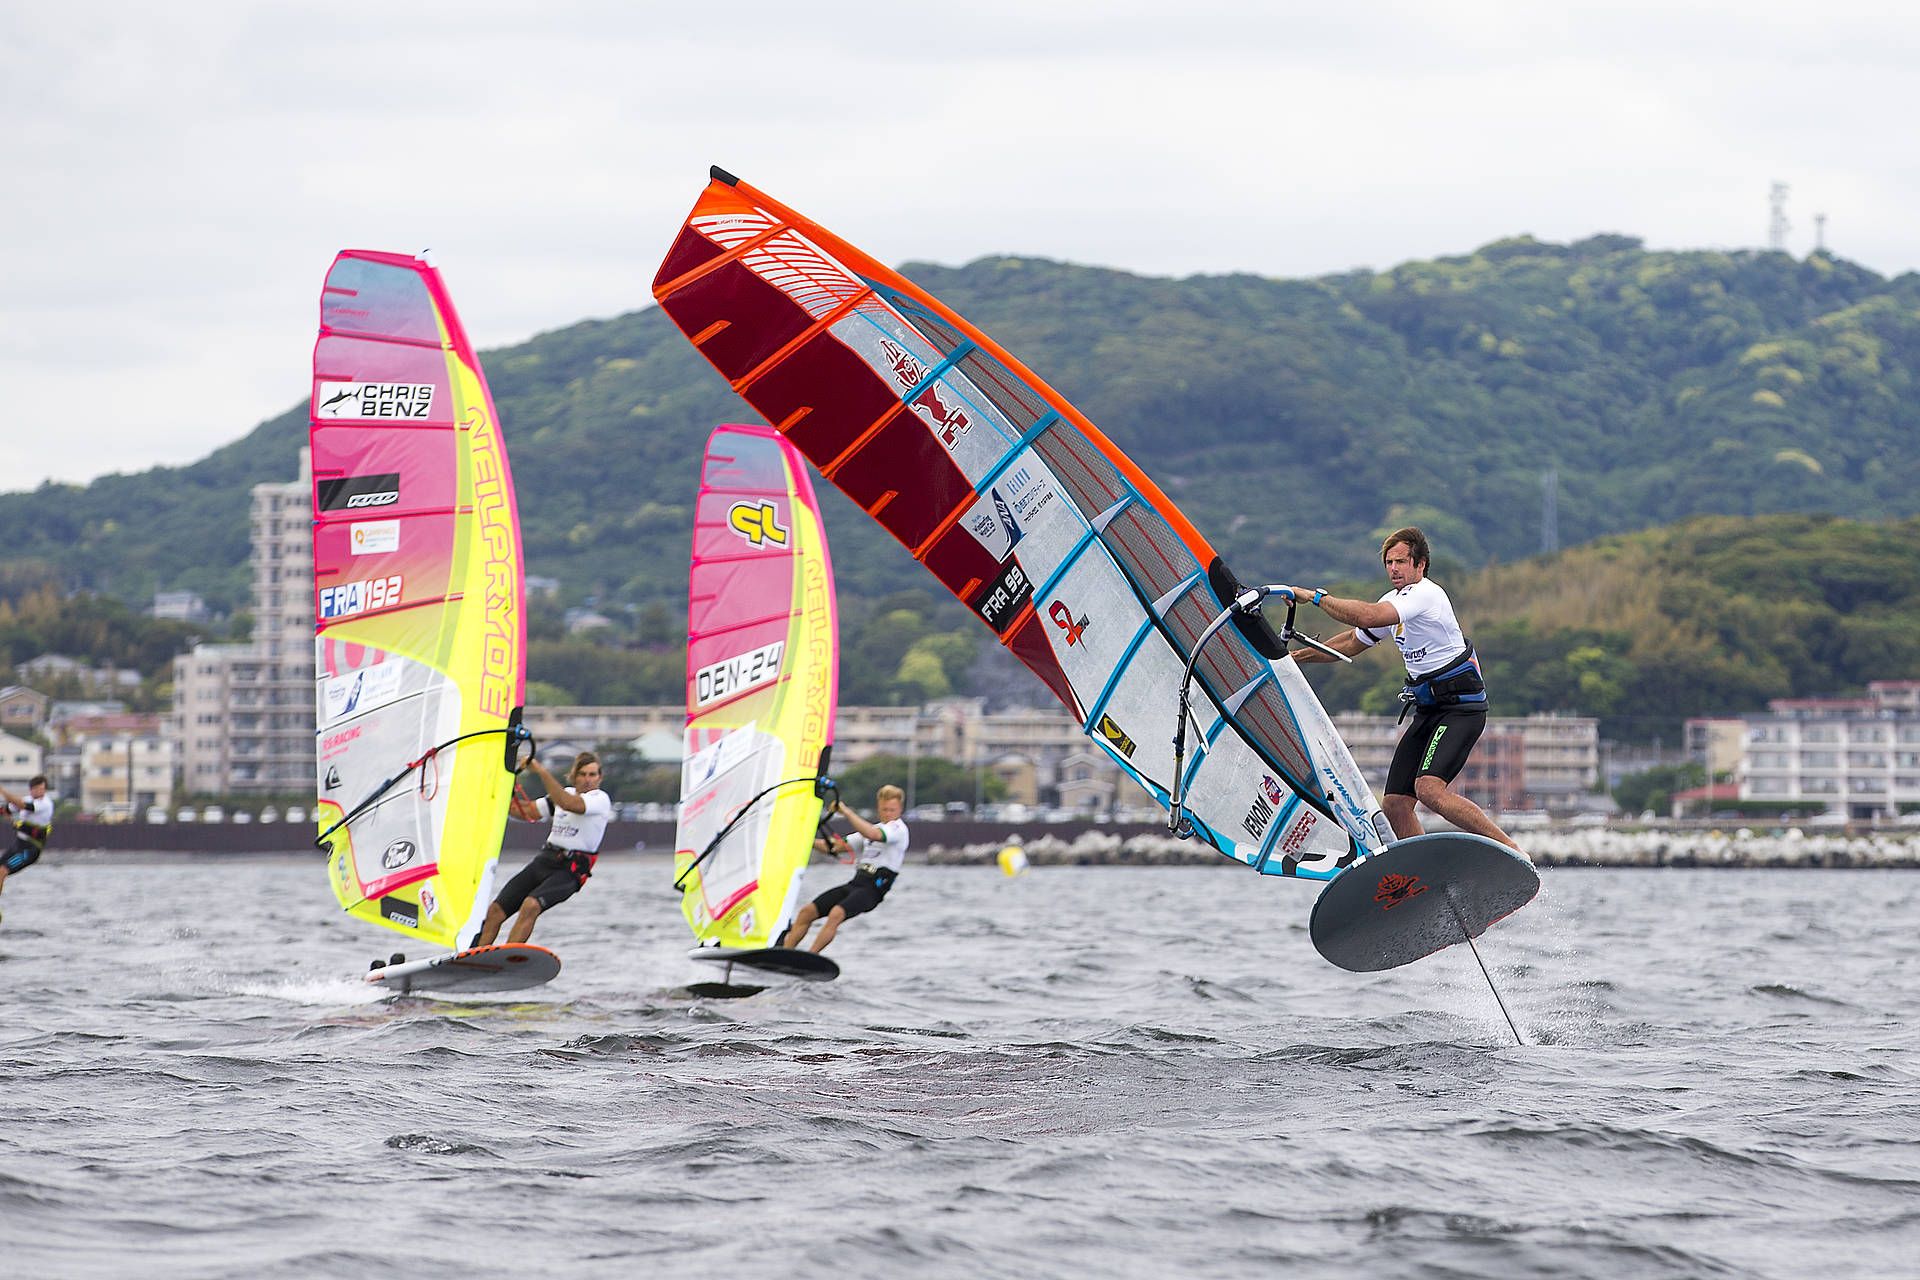 PWA WORLD WINDSURFING TOUR: Foiling